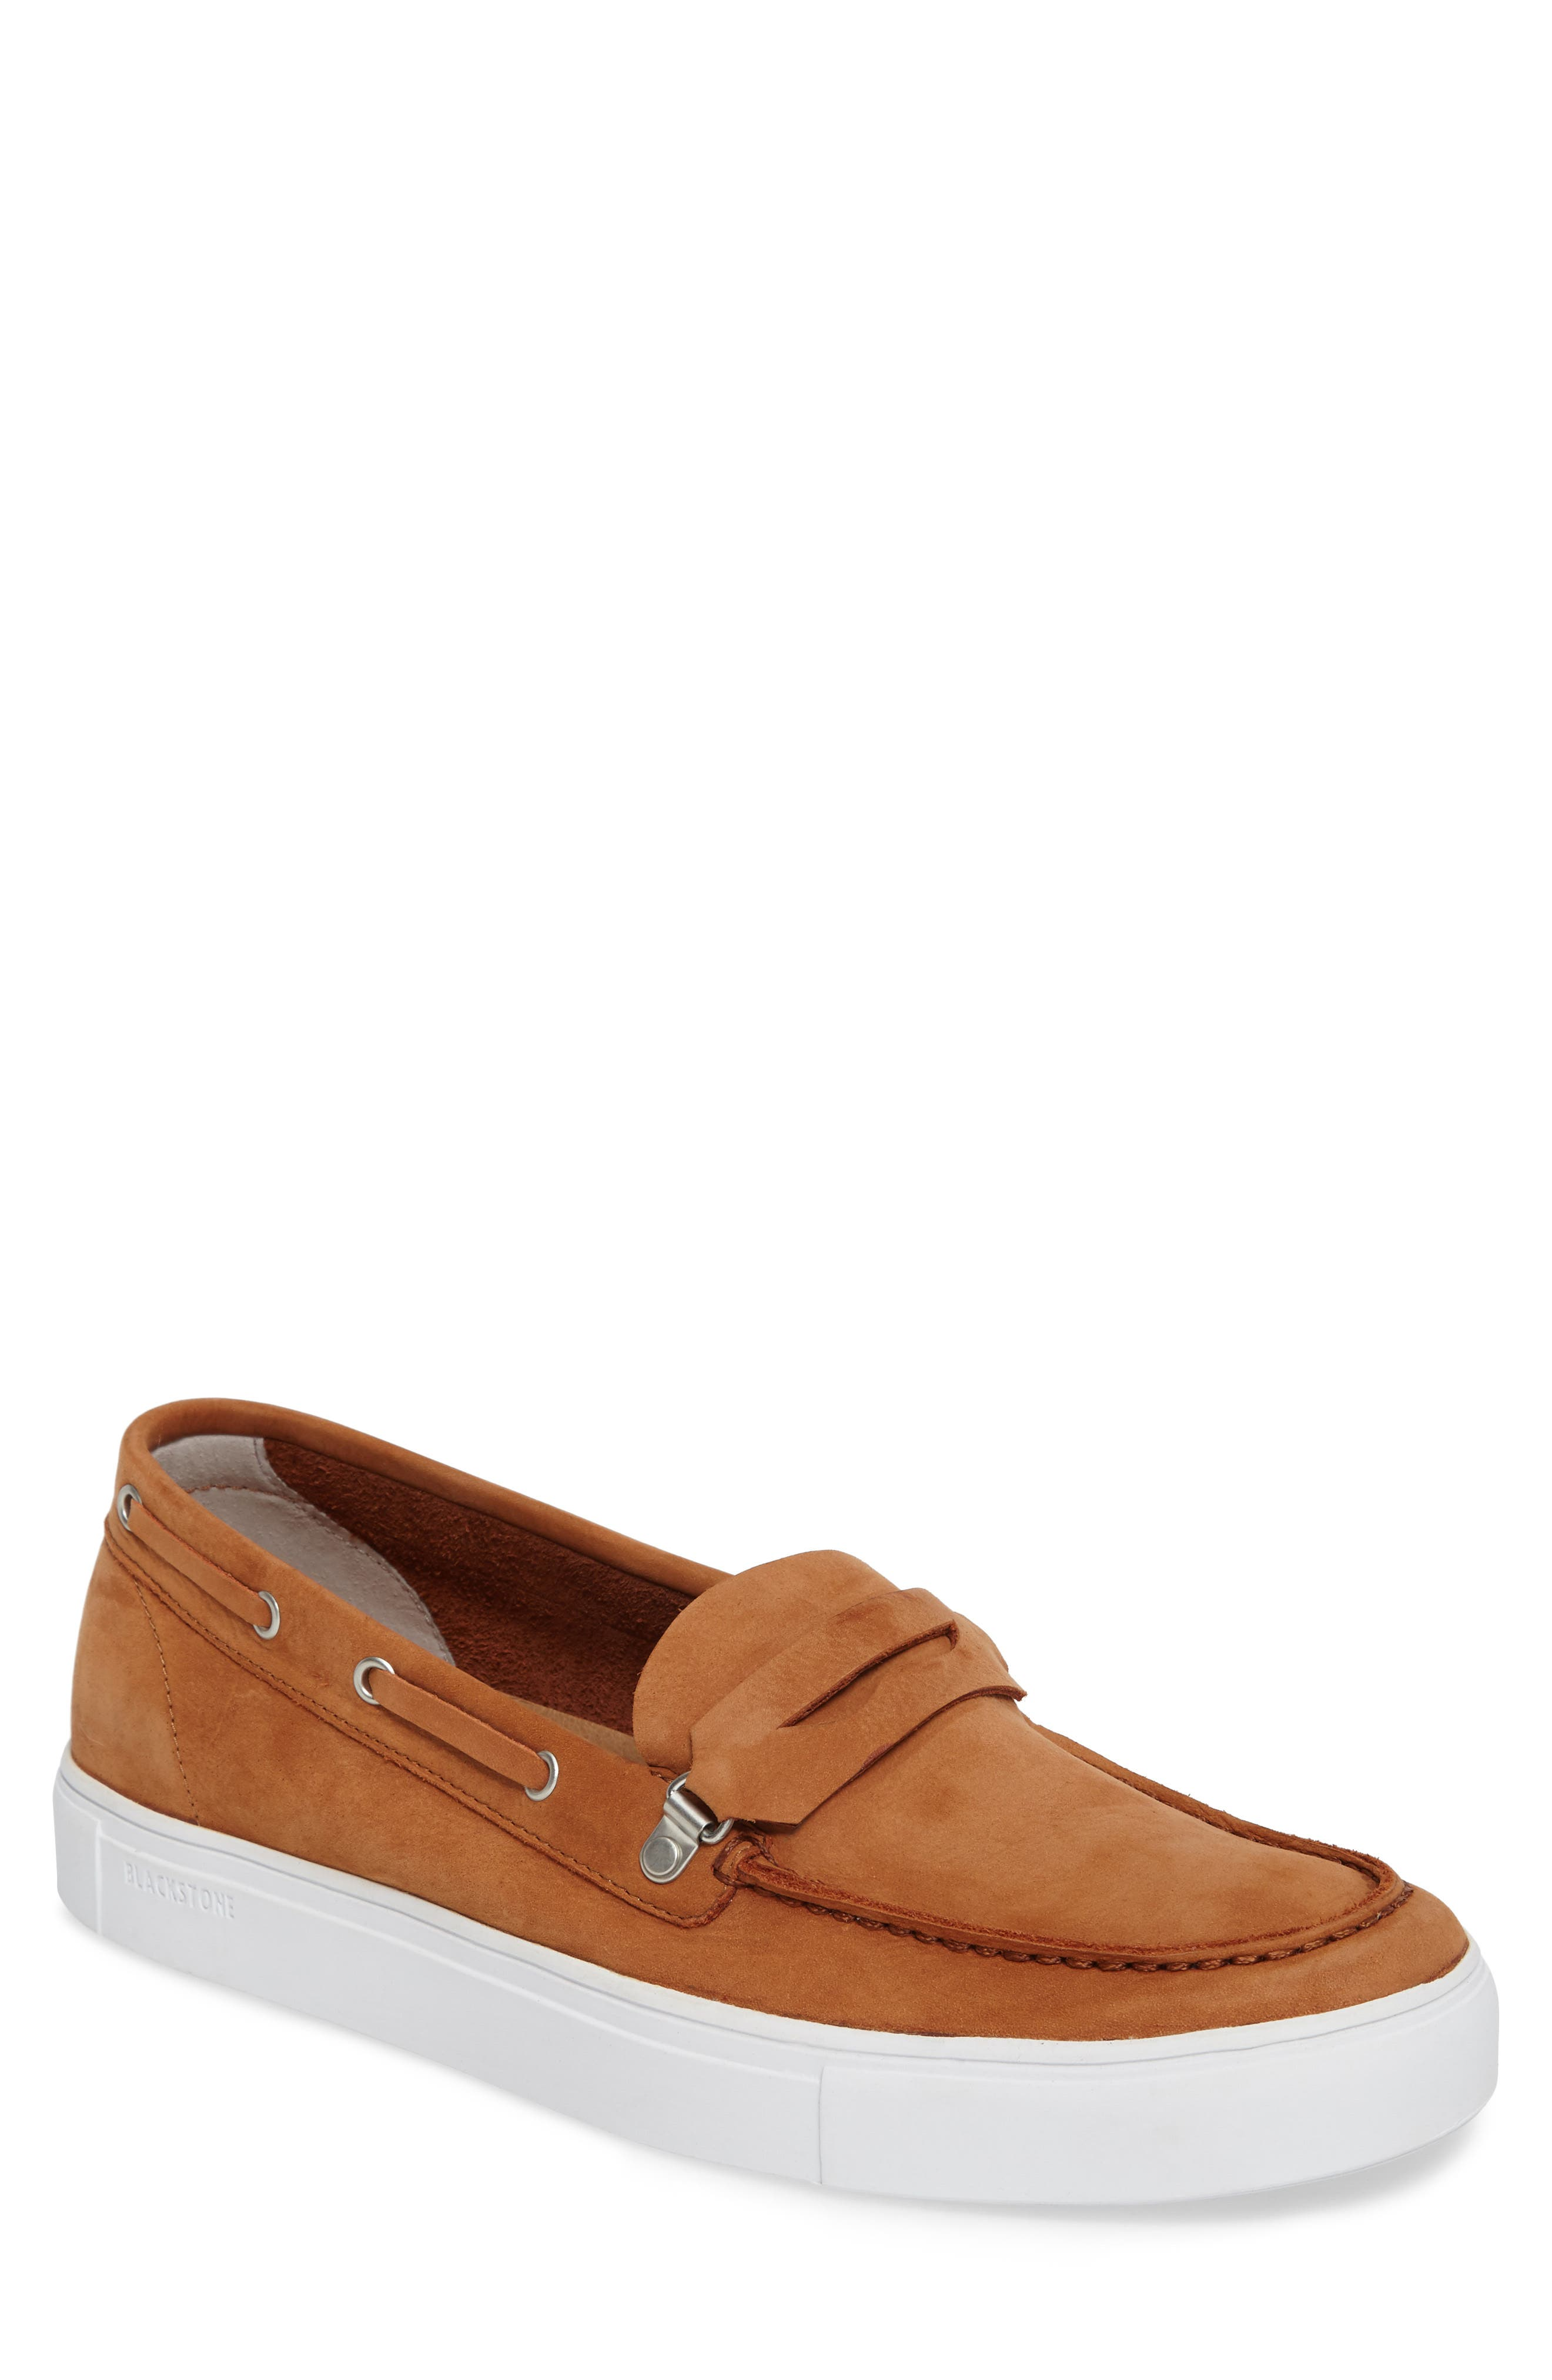 Alternate Image 1 Selected - Blackstone NM15 Loafer Sneaker (Men)